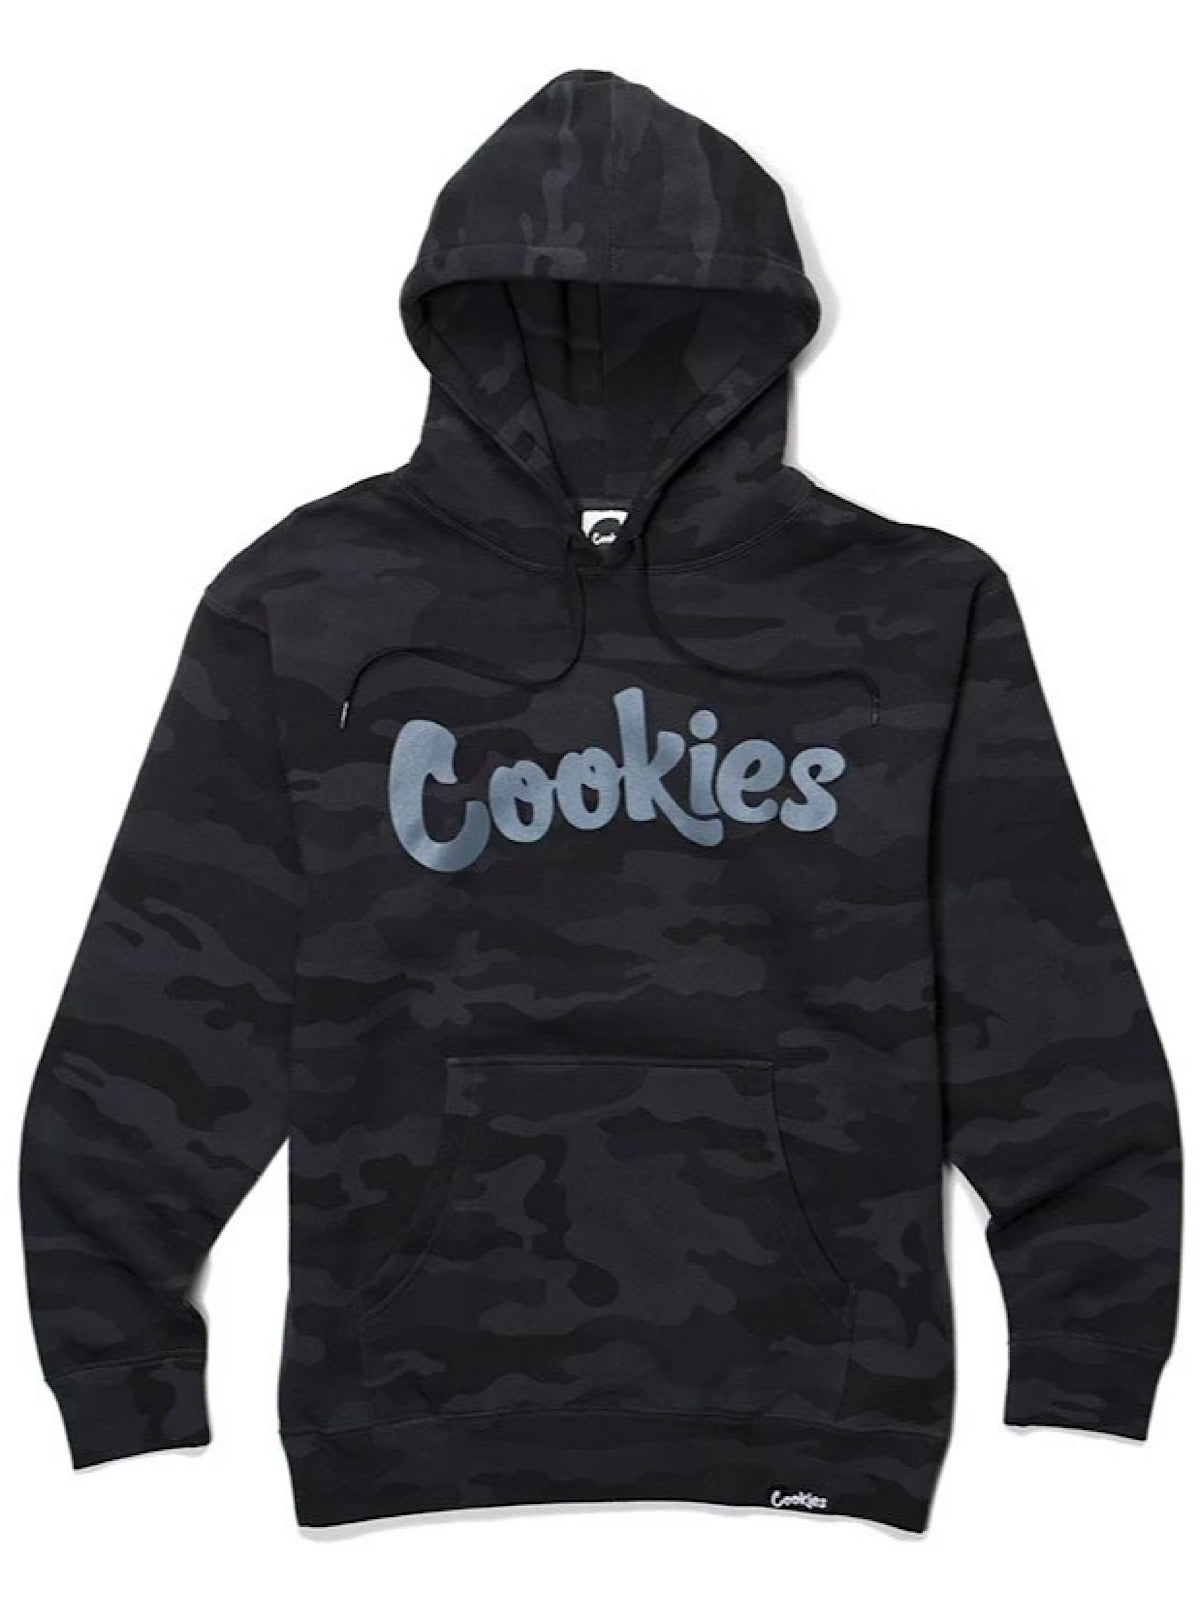 Cookies Hoodie - Original Mint - Black Camo - 1546H4387